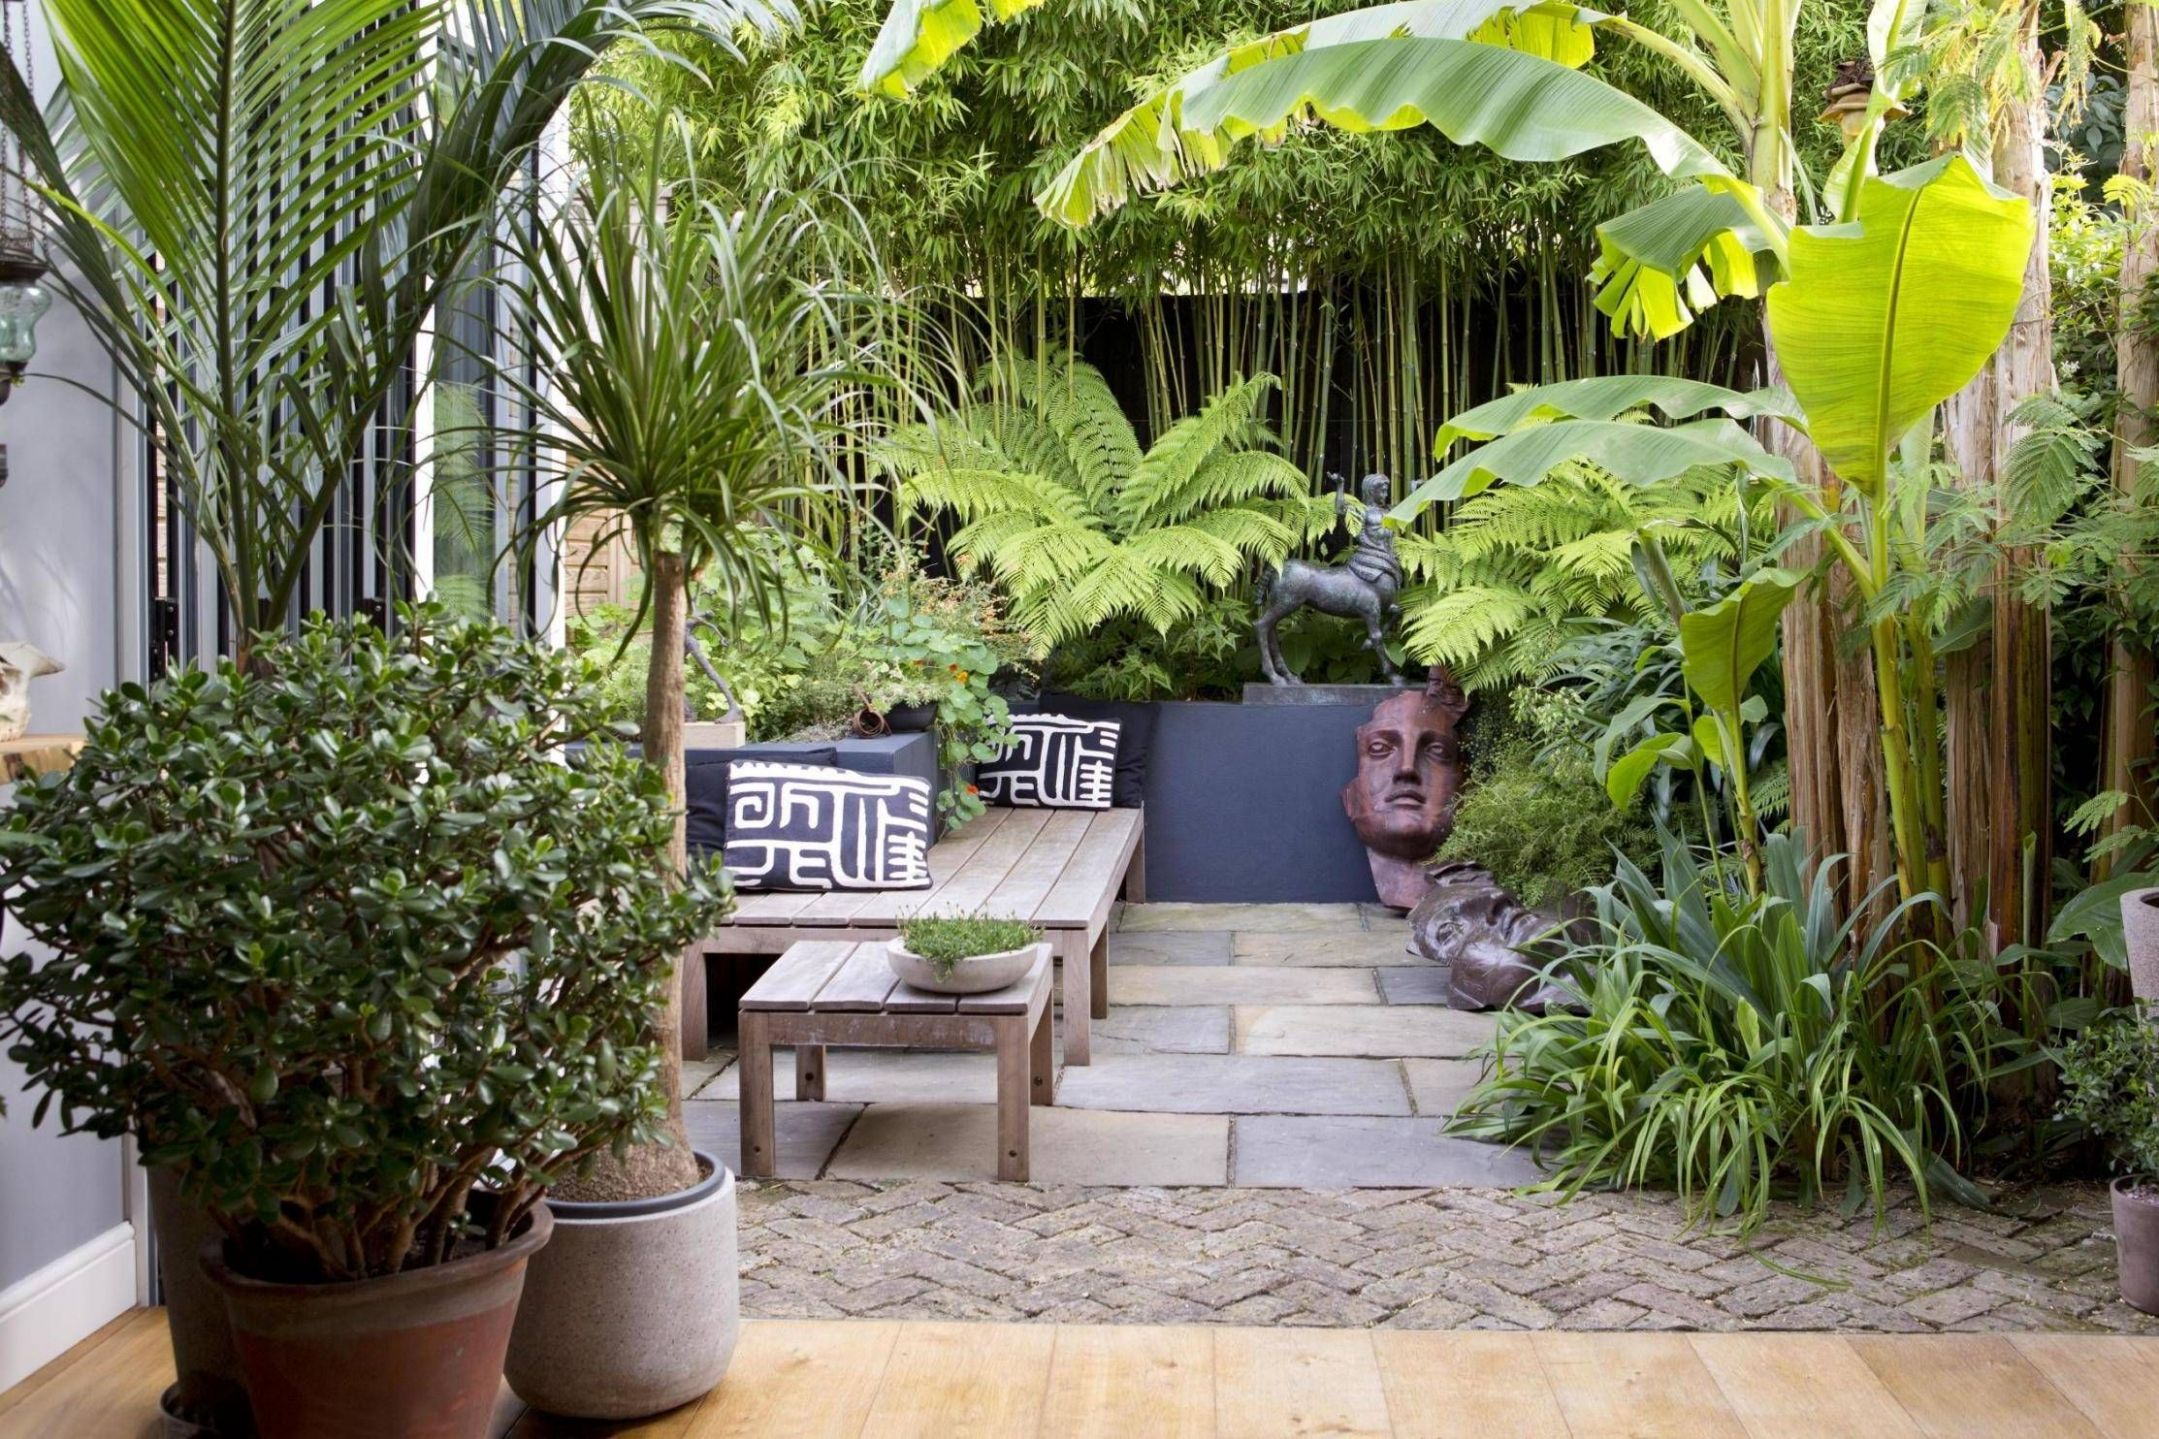 Pin on Garden - jungle backyard ideas